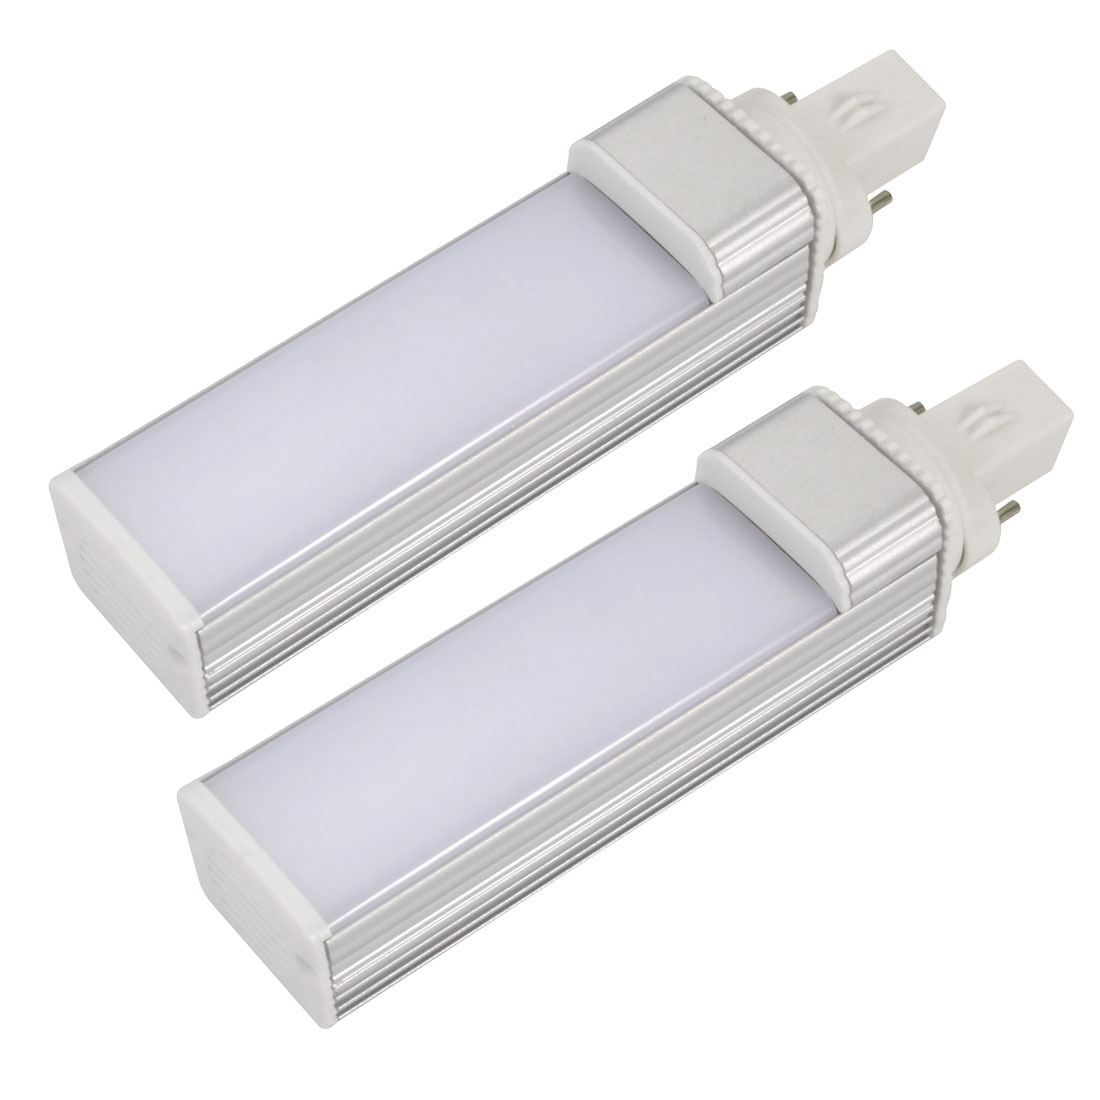 2pack DIY parts for PLC Lamp G23 8W PL-C Lamp Housing Kit w White Cover